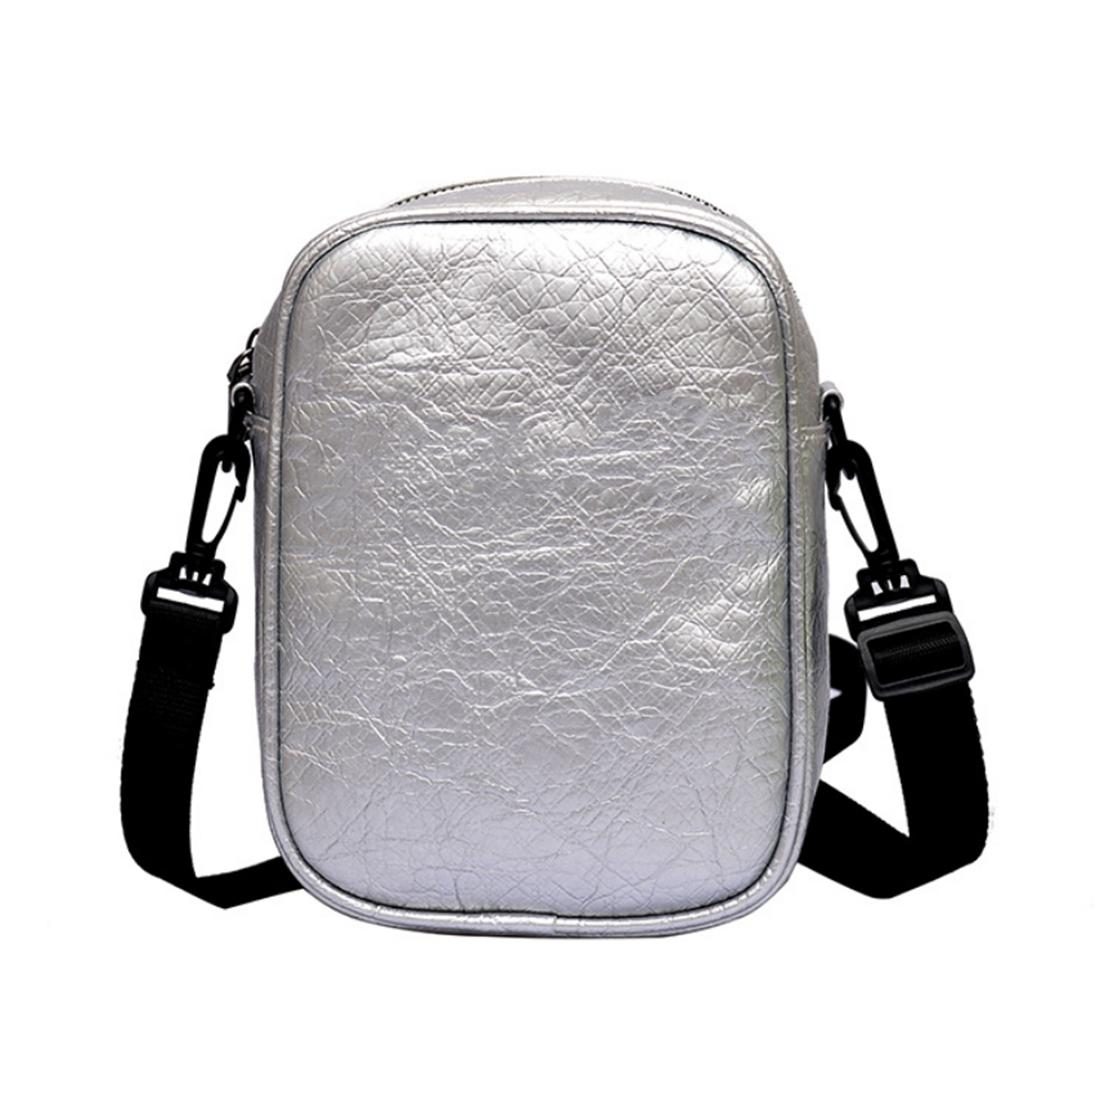 Single-shoulder Bag Mini Crossbody Bag Small Square Bag  Buy Sell Online   Best  Prices in Pakistan  83797222f0979